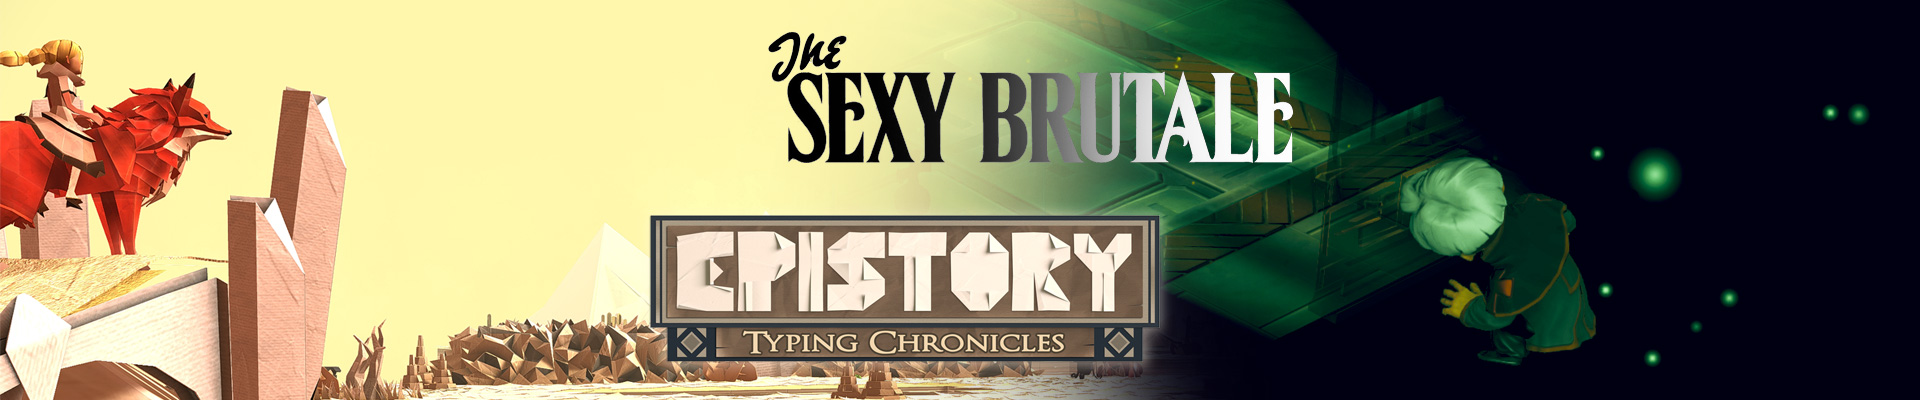 Мысли про: The Sexy Brutale и Epistory – Typing Chronicles